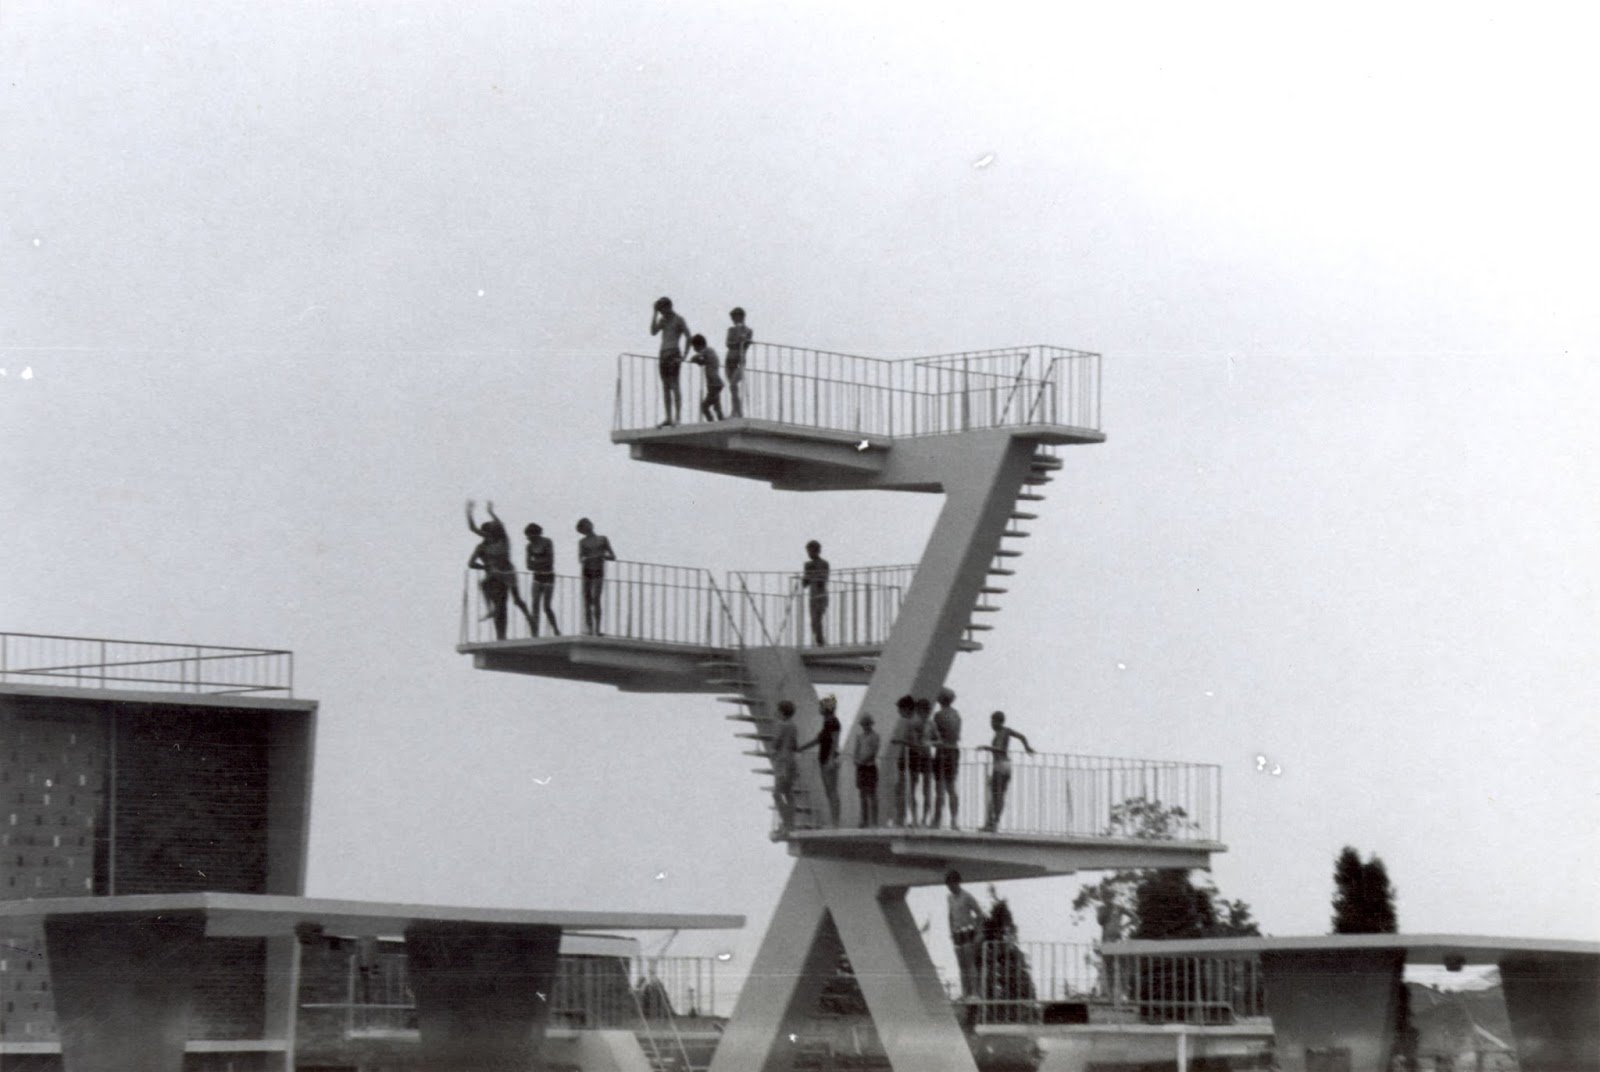 Fibreglass swimming pool construction port macquarie freeform style - The Diving Tower Ruth Everuss Aquatic Centre Source Cumberland Council Library Service